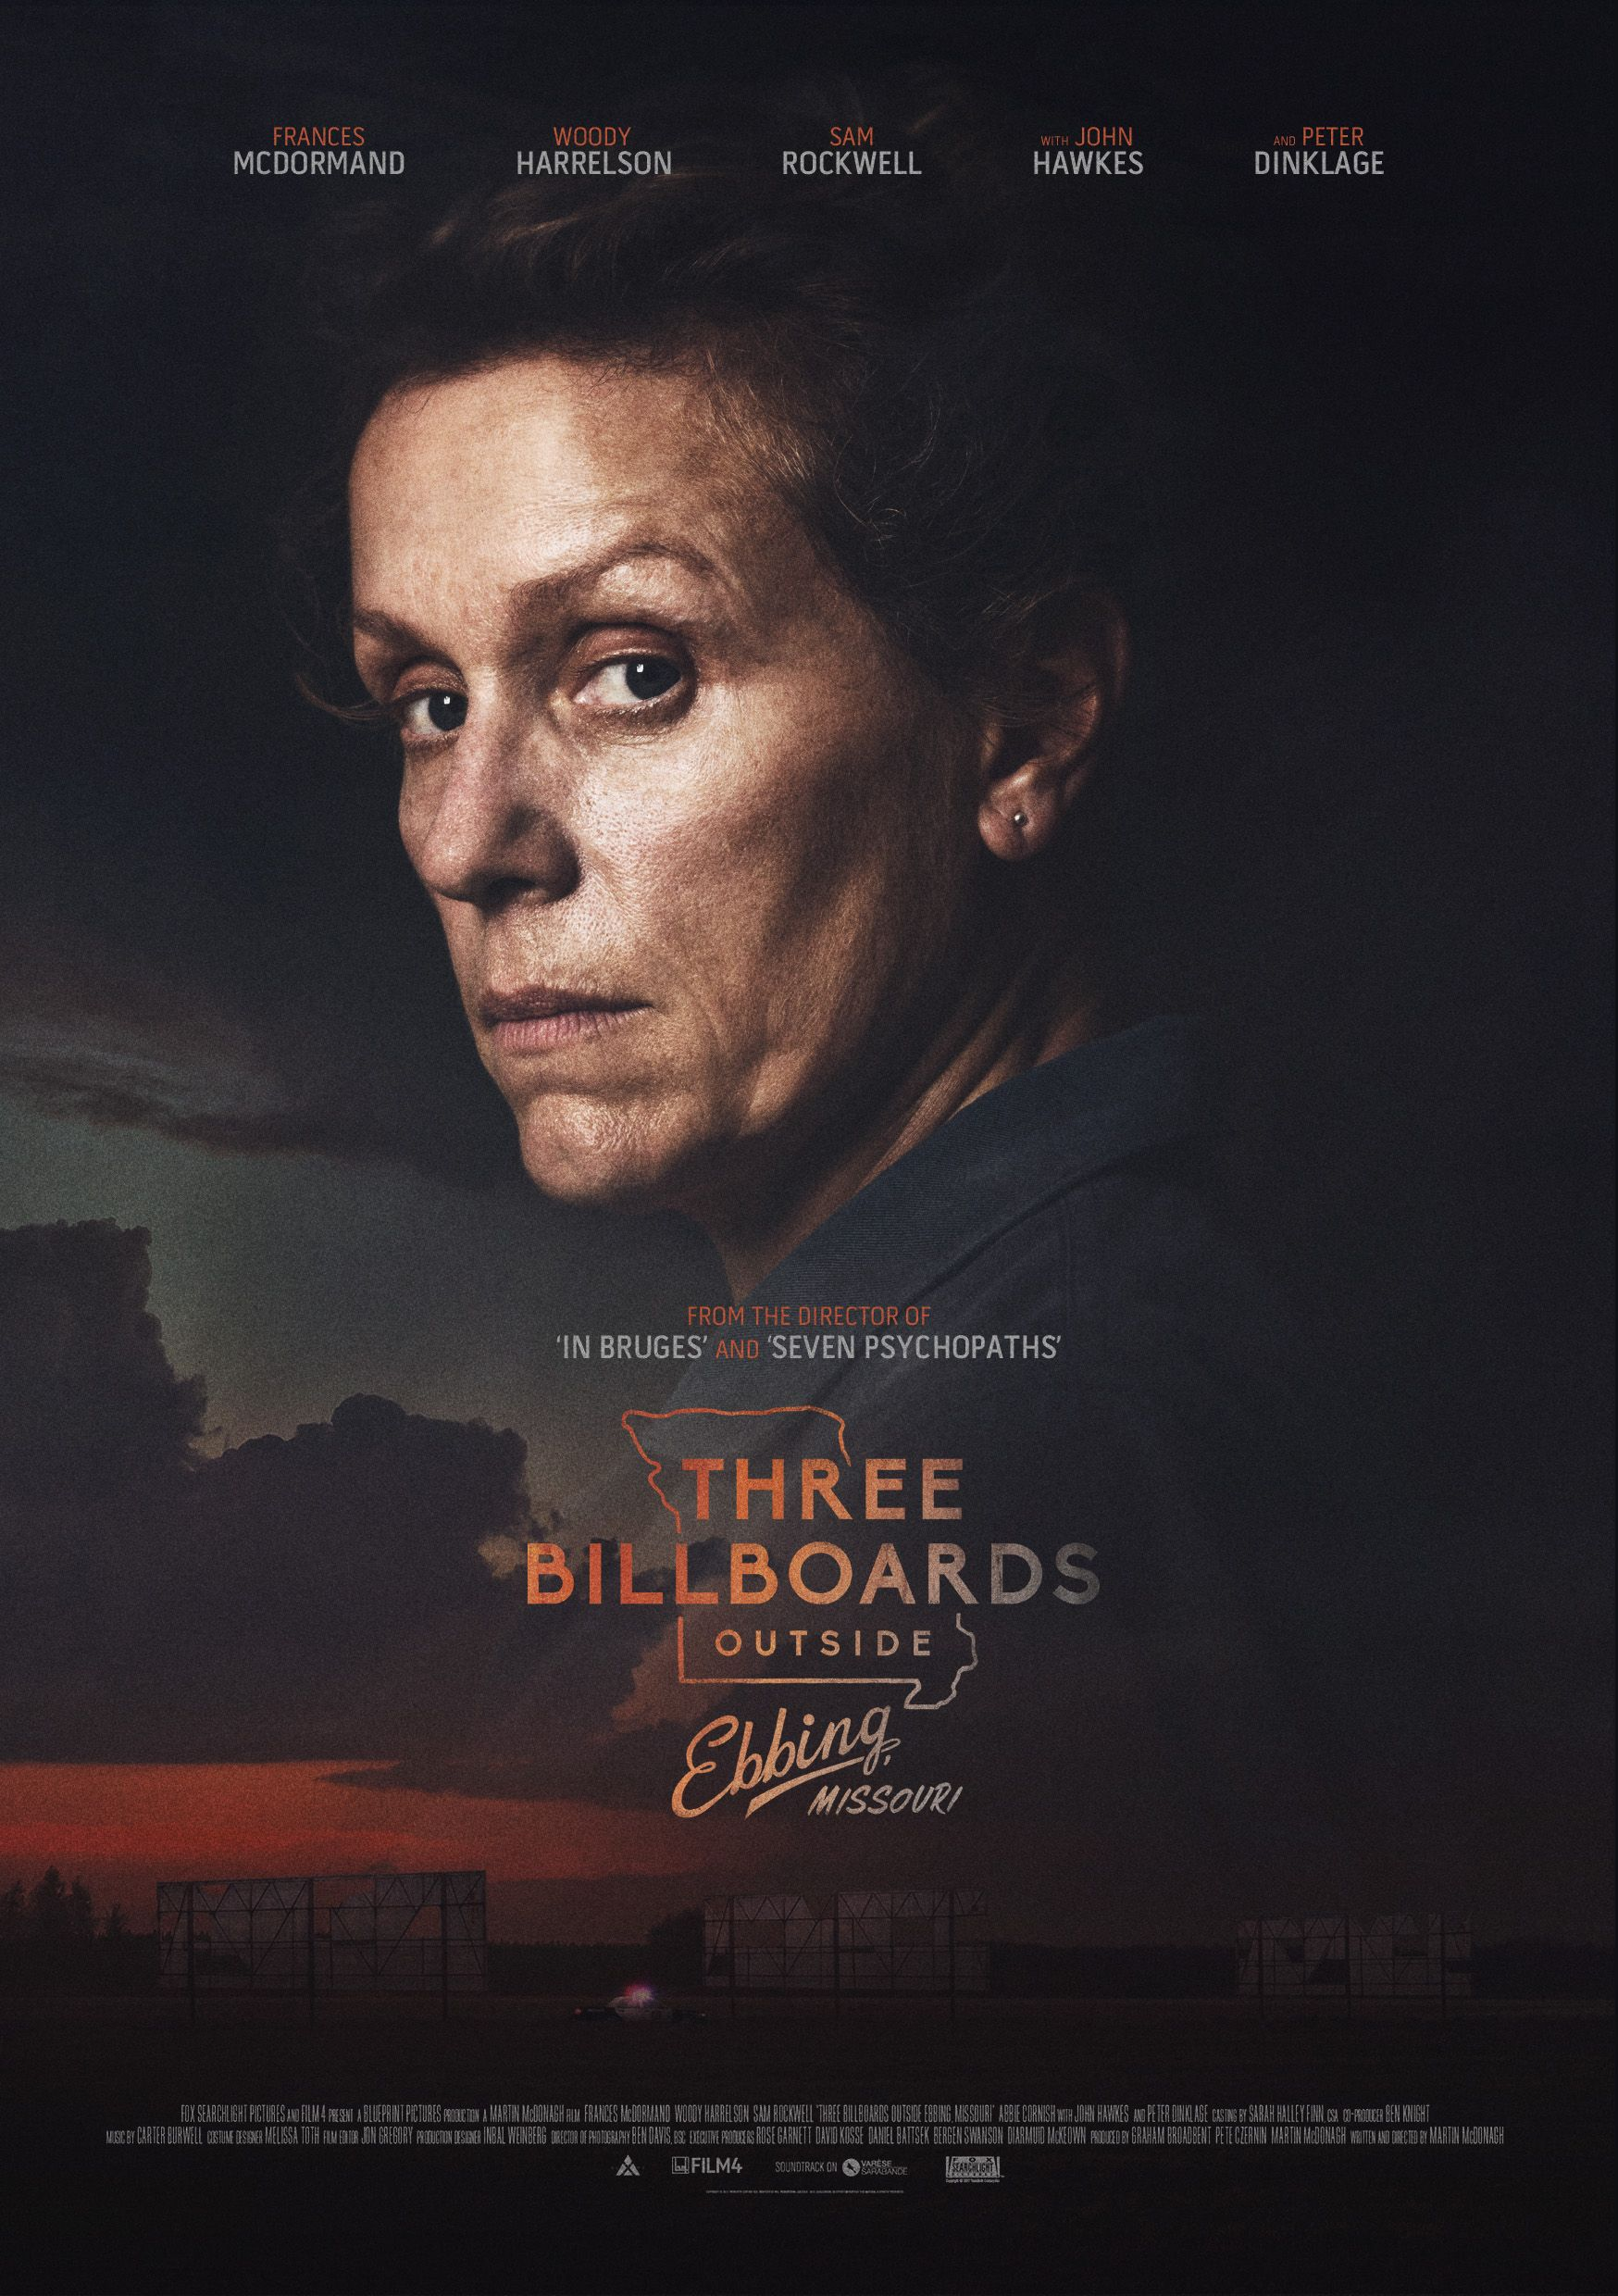 three billboards outside ebbing missouri poster by